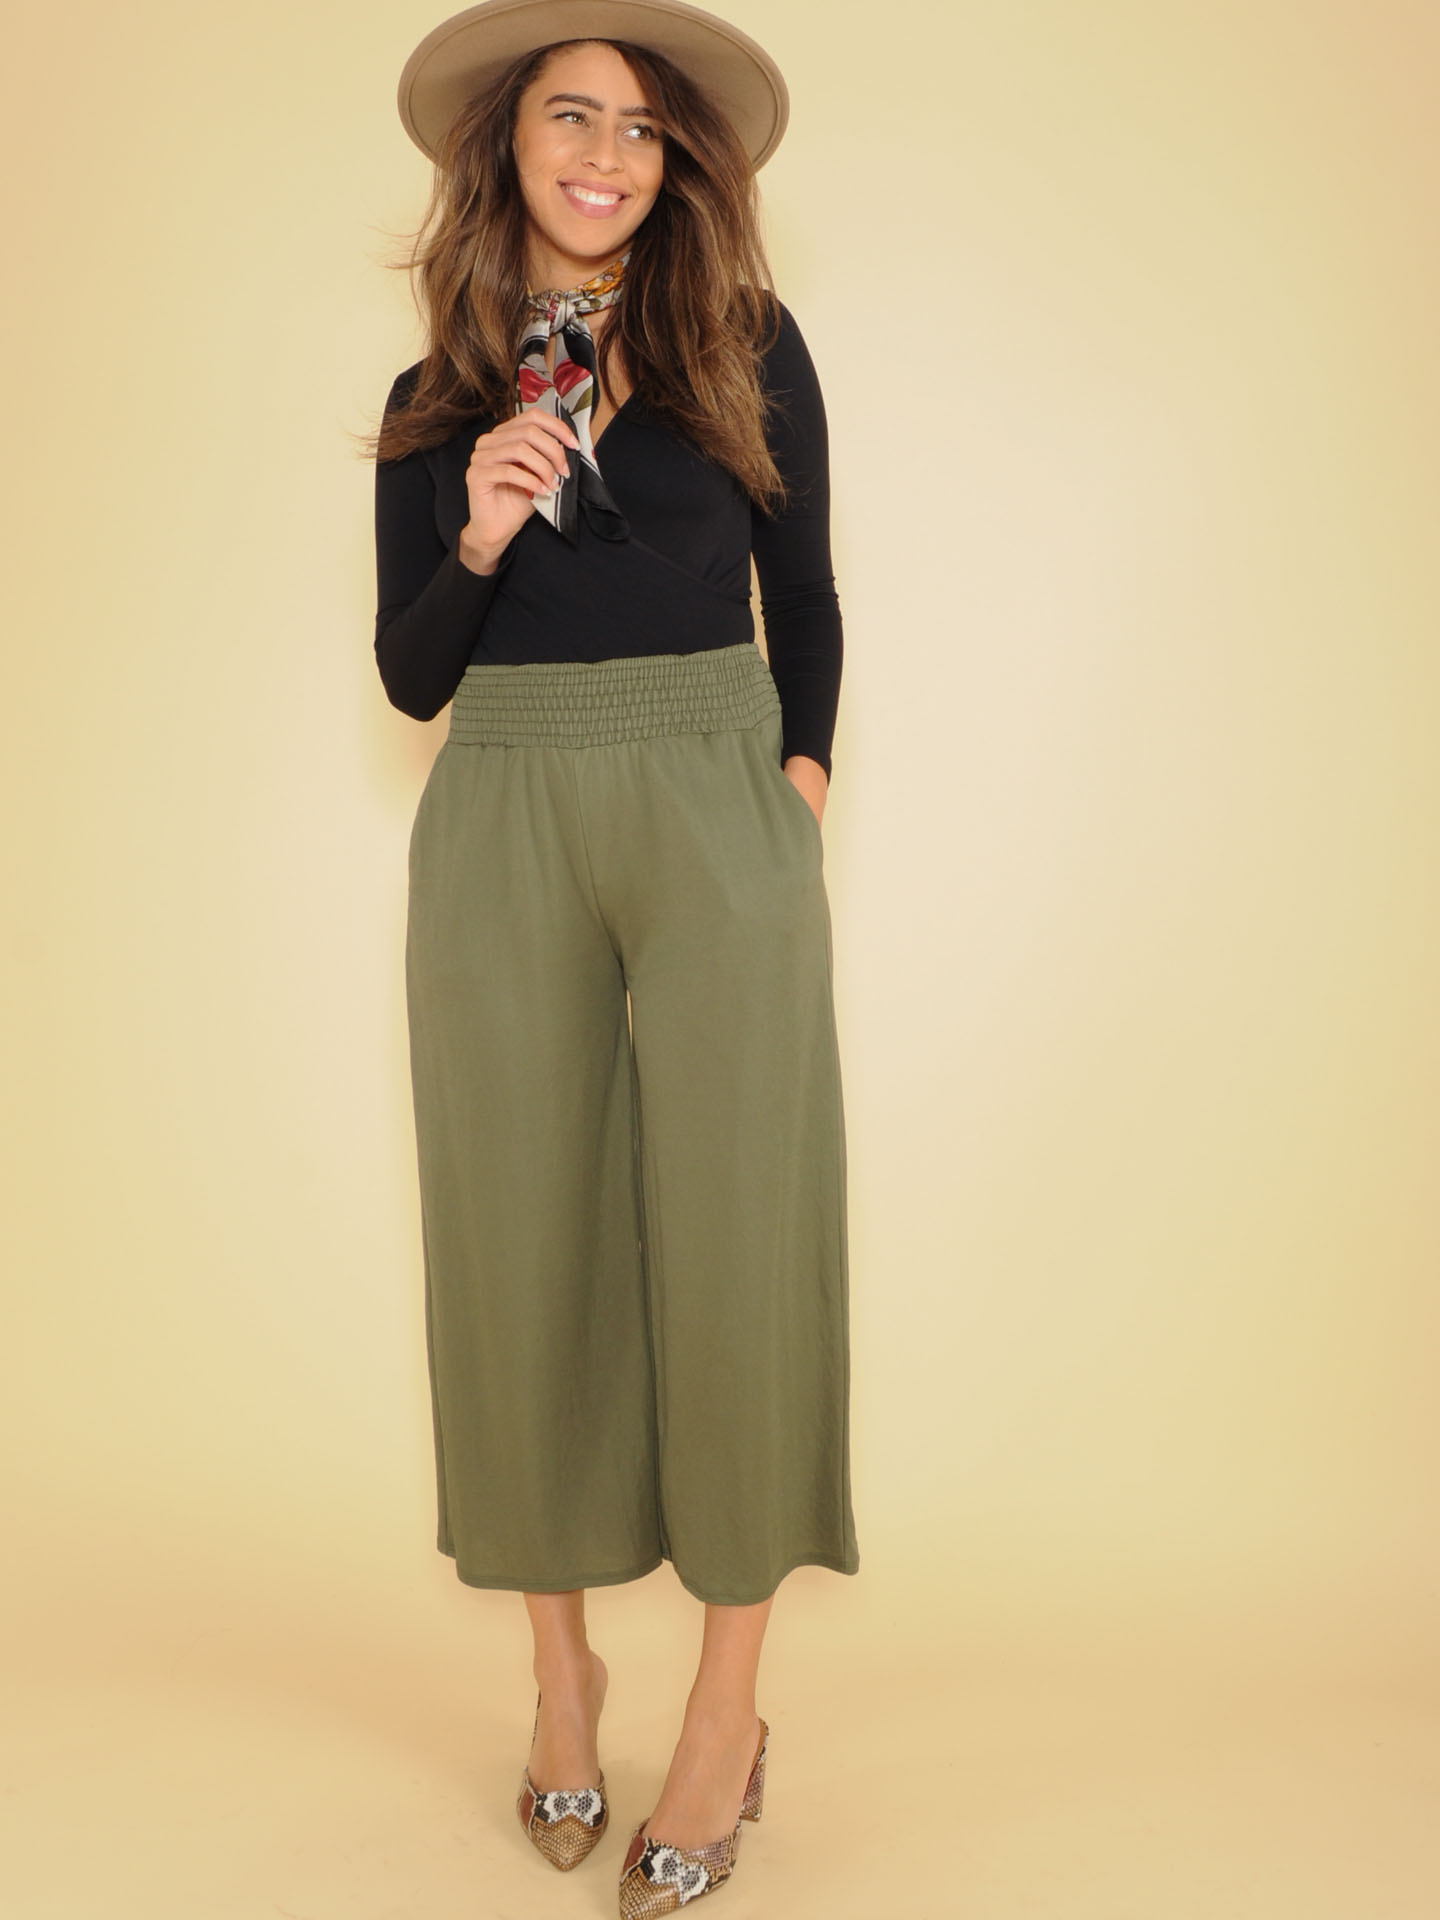 High Rise Flowy Smocked Olive Nina Comfy Pants